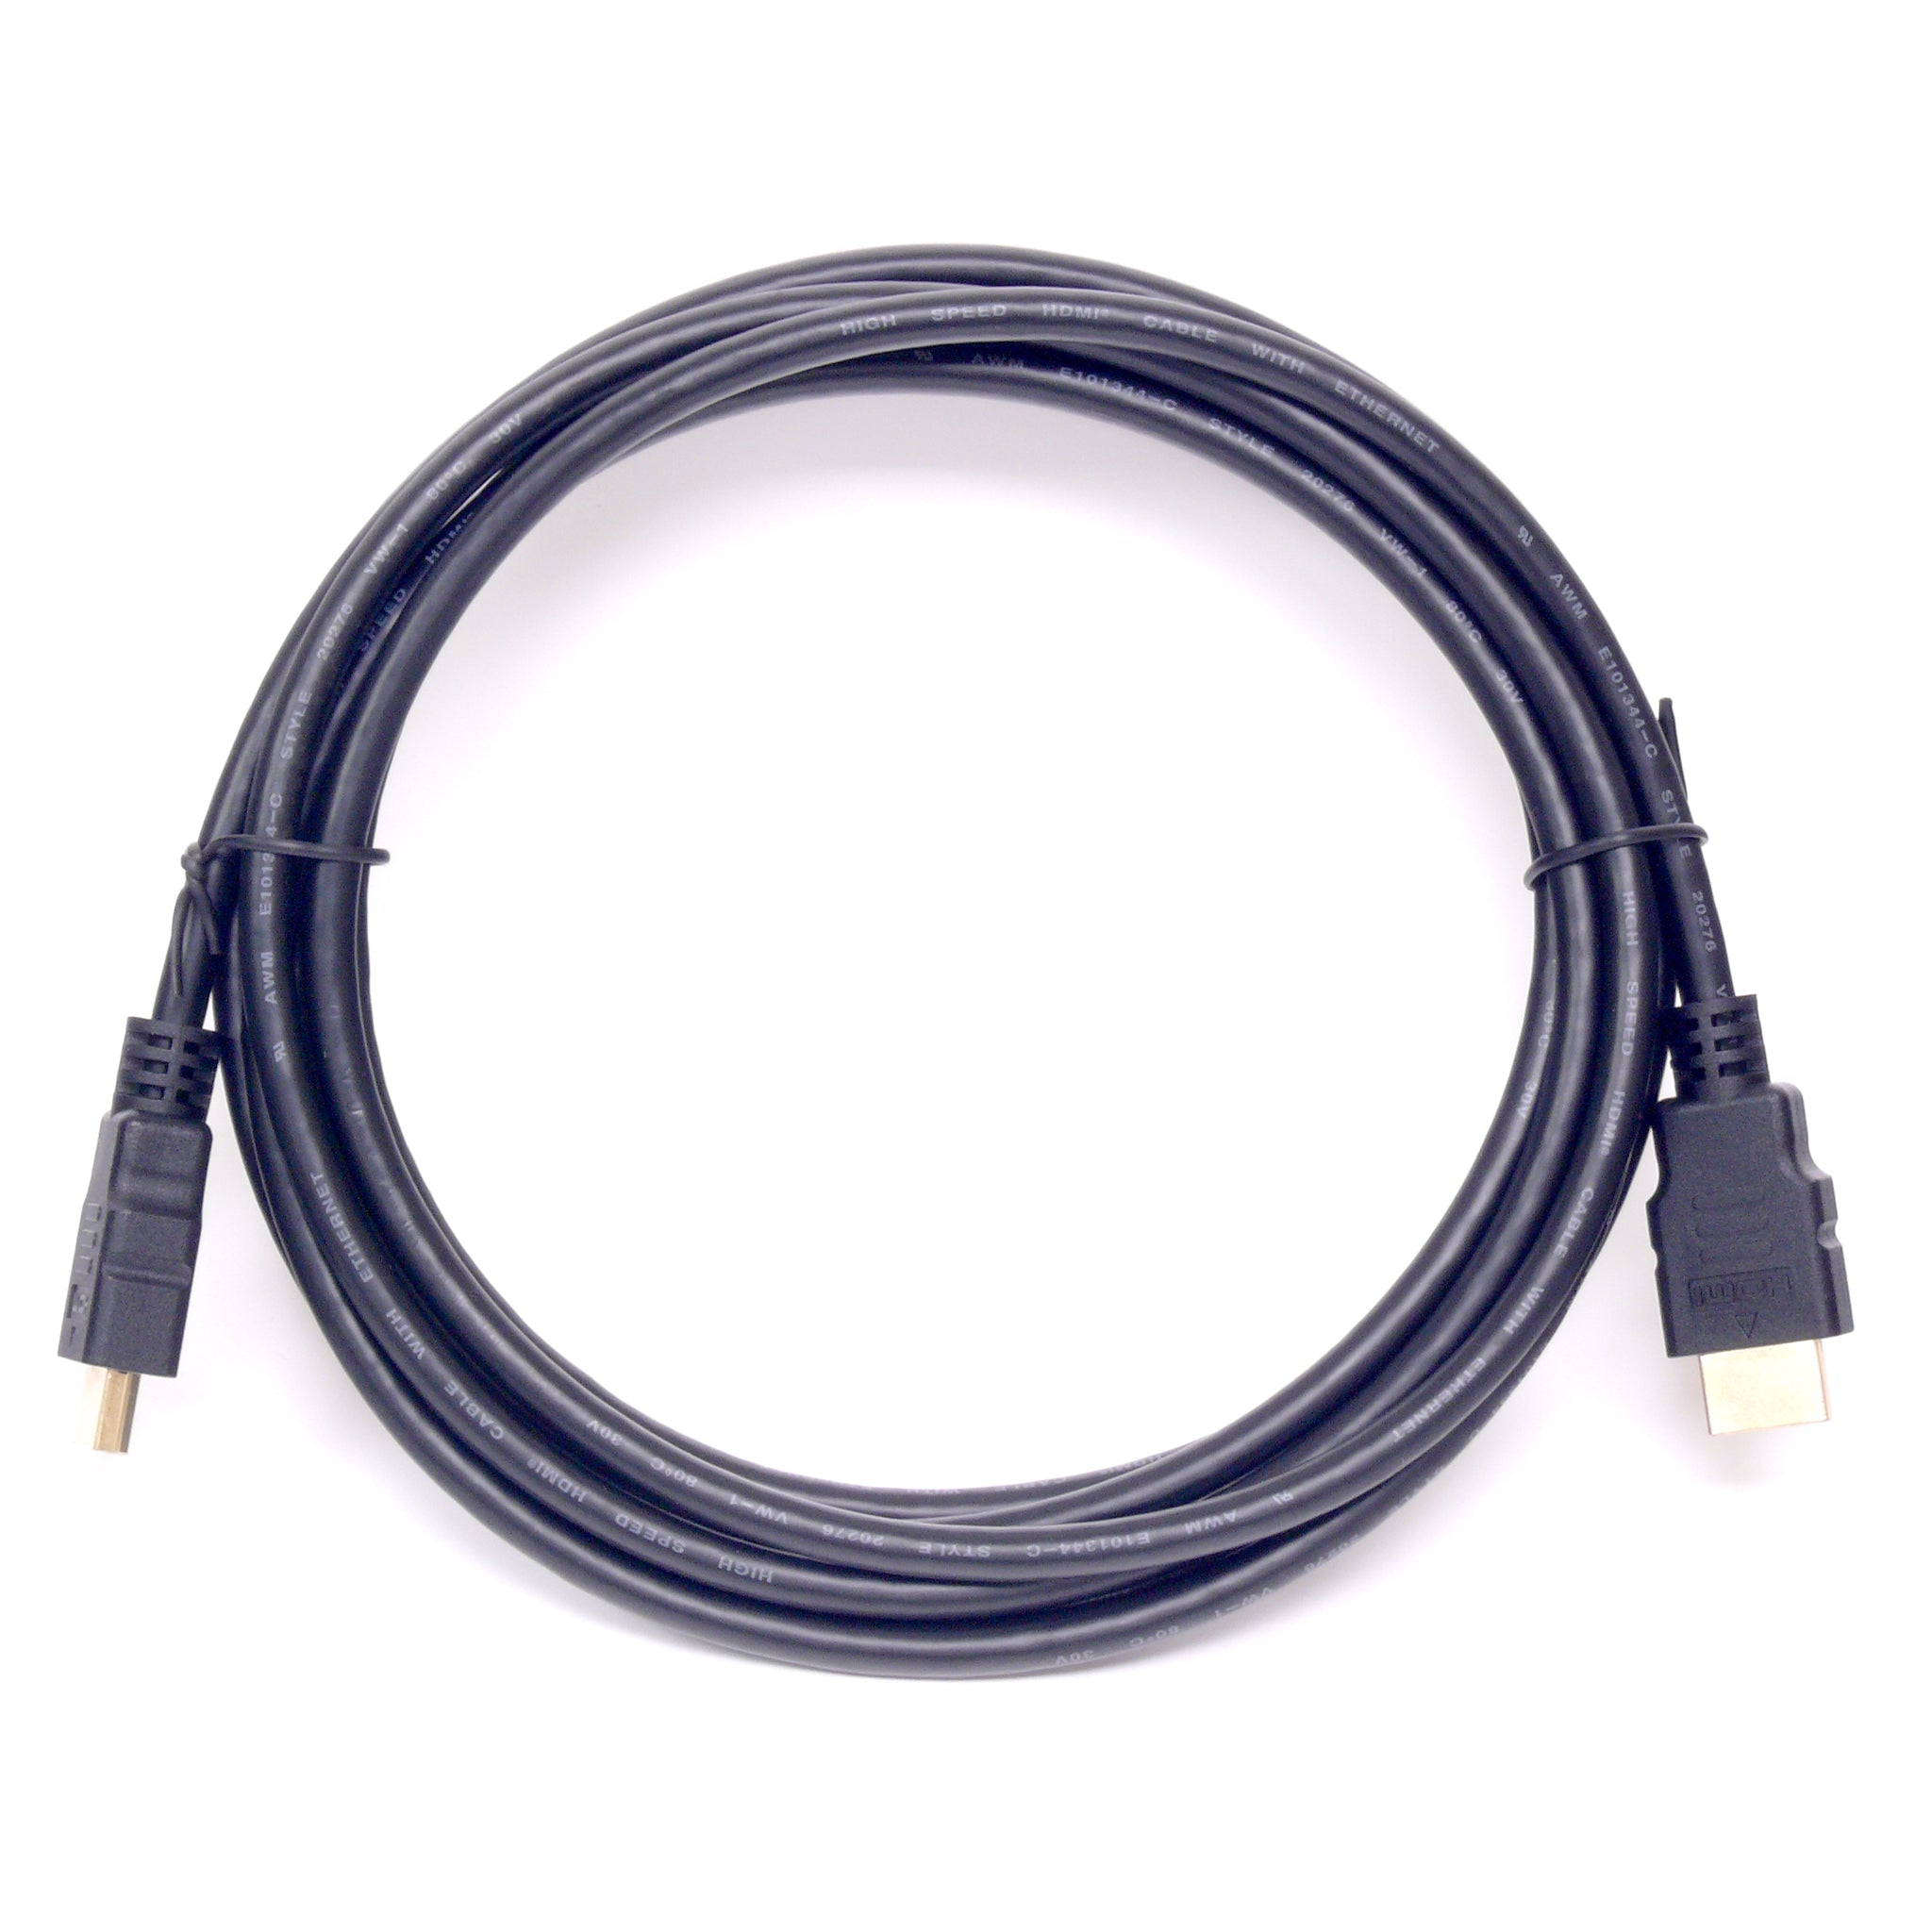 SB-HDMI-2.0-10FT HDMI 2.0 Cables 4K UHD 18 GHz 10 Foot Length